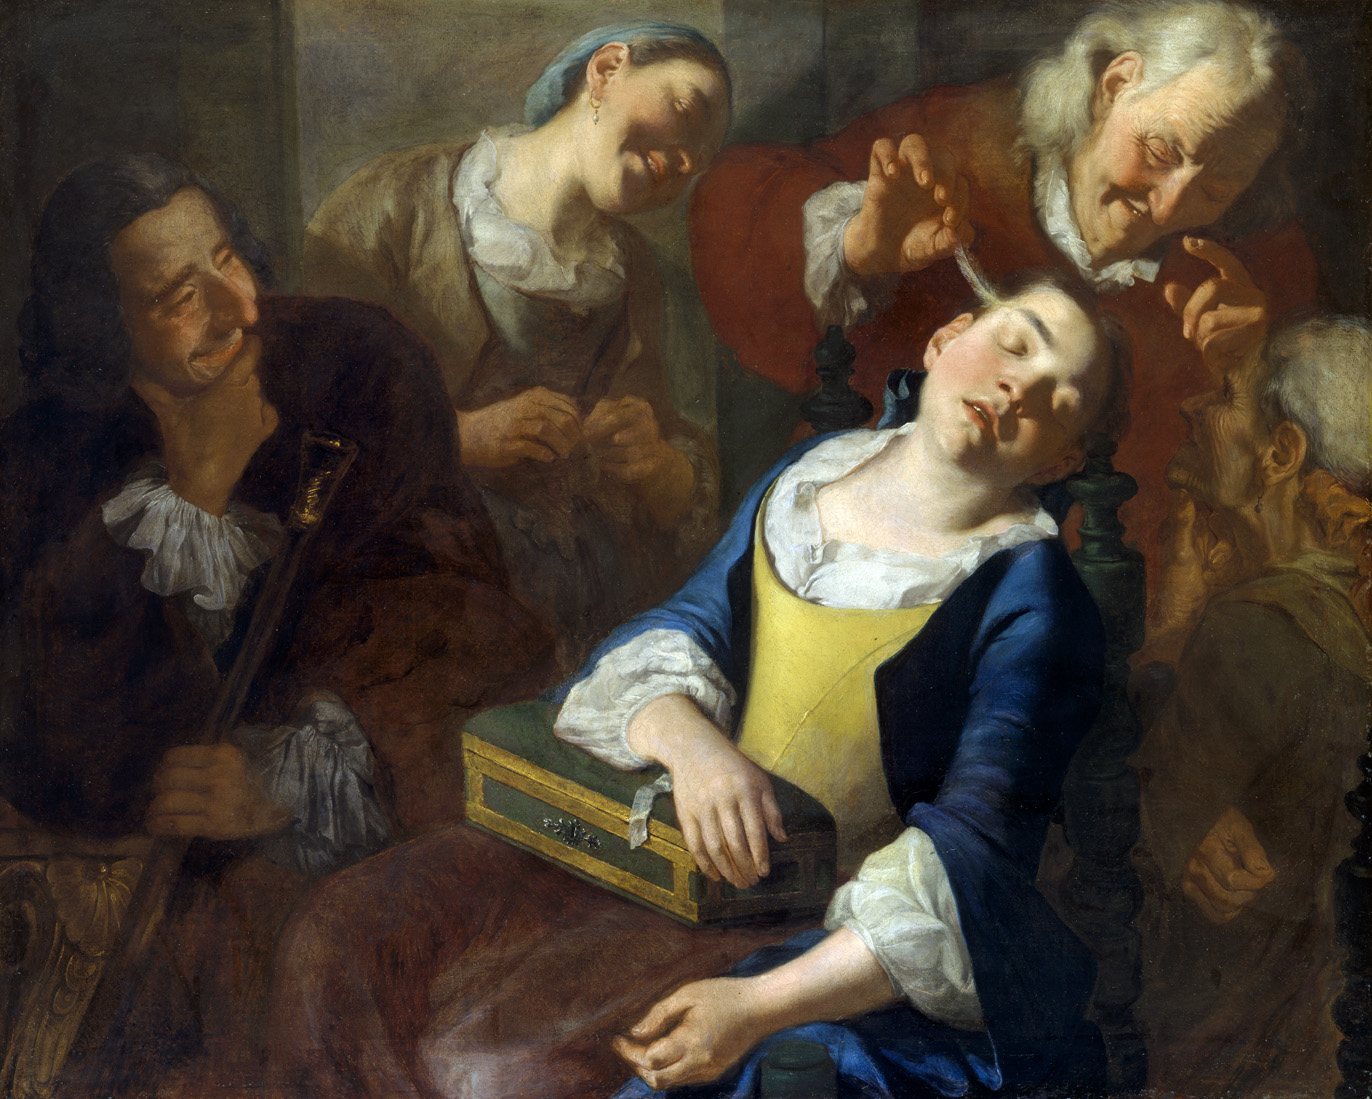 Teasing a Sleeping Girl, by Gaspare Traversi, c. 1760